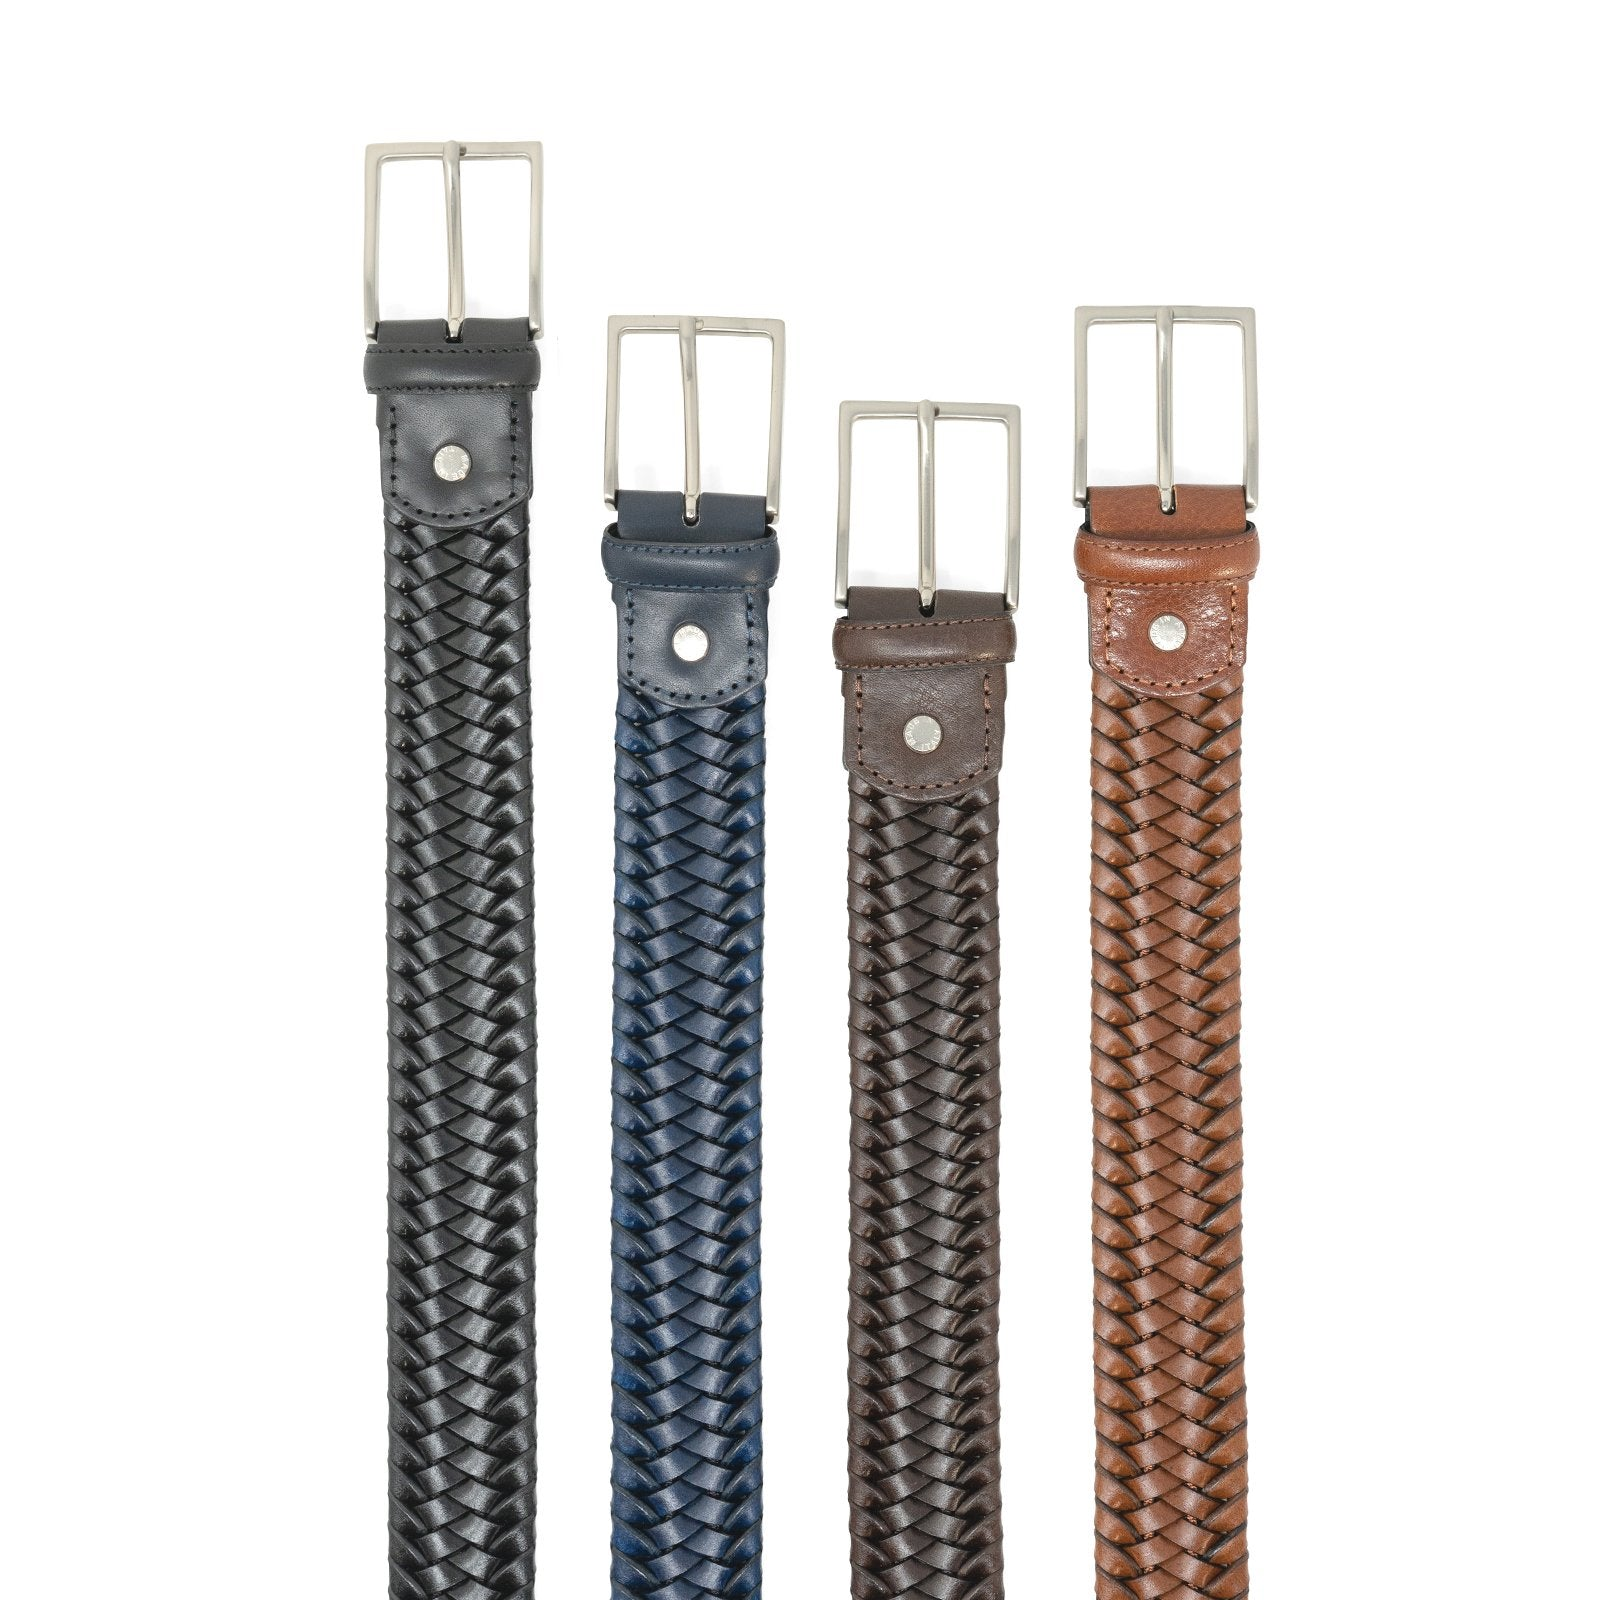 Unisex Leather Woven Belt in Brown - Jennifer Tattanelli